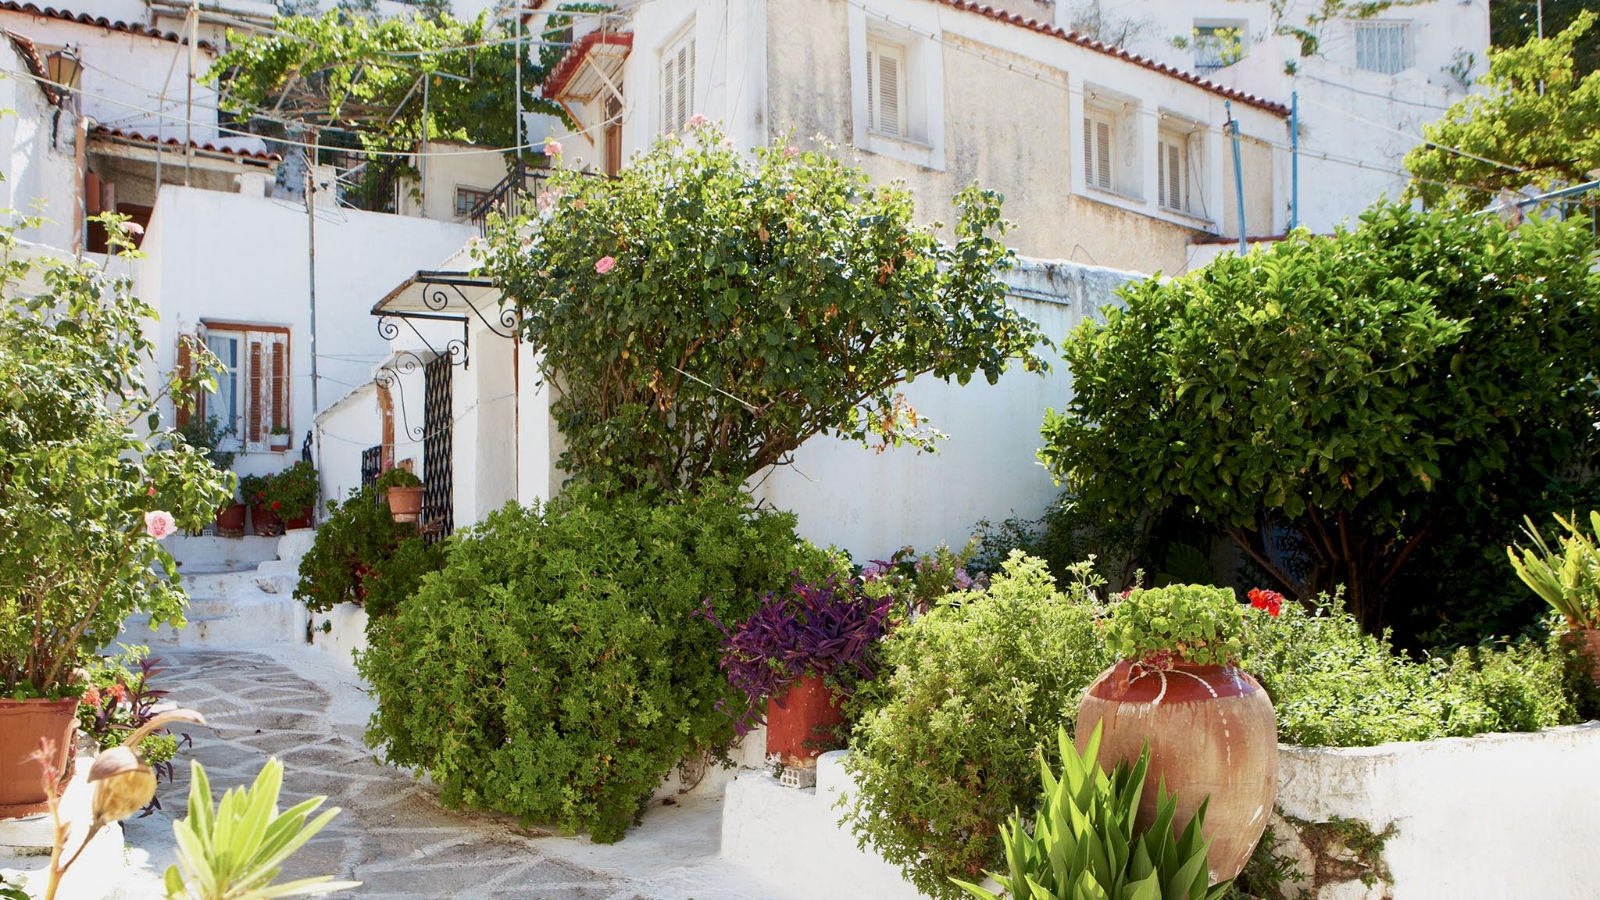 Plaka-Anafiotika-recommended by Hotel Grande Bretagne concierge